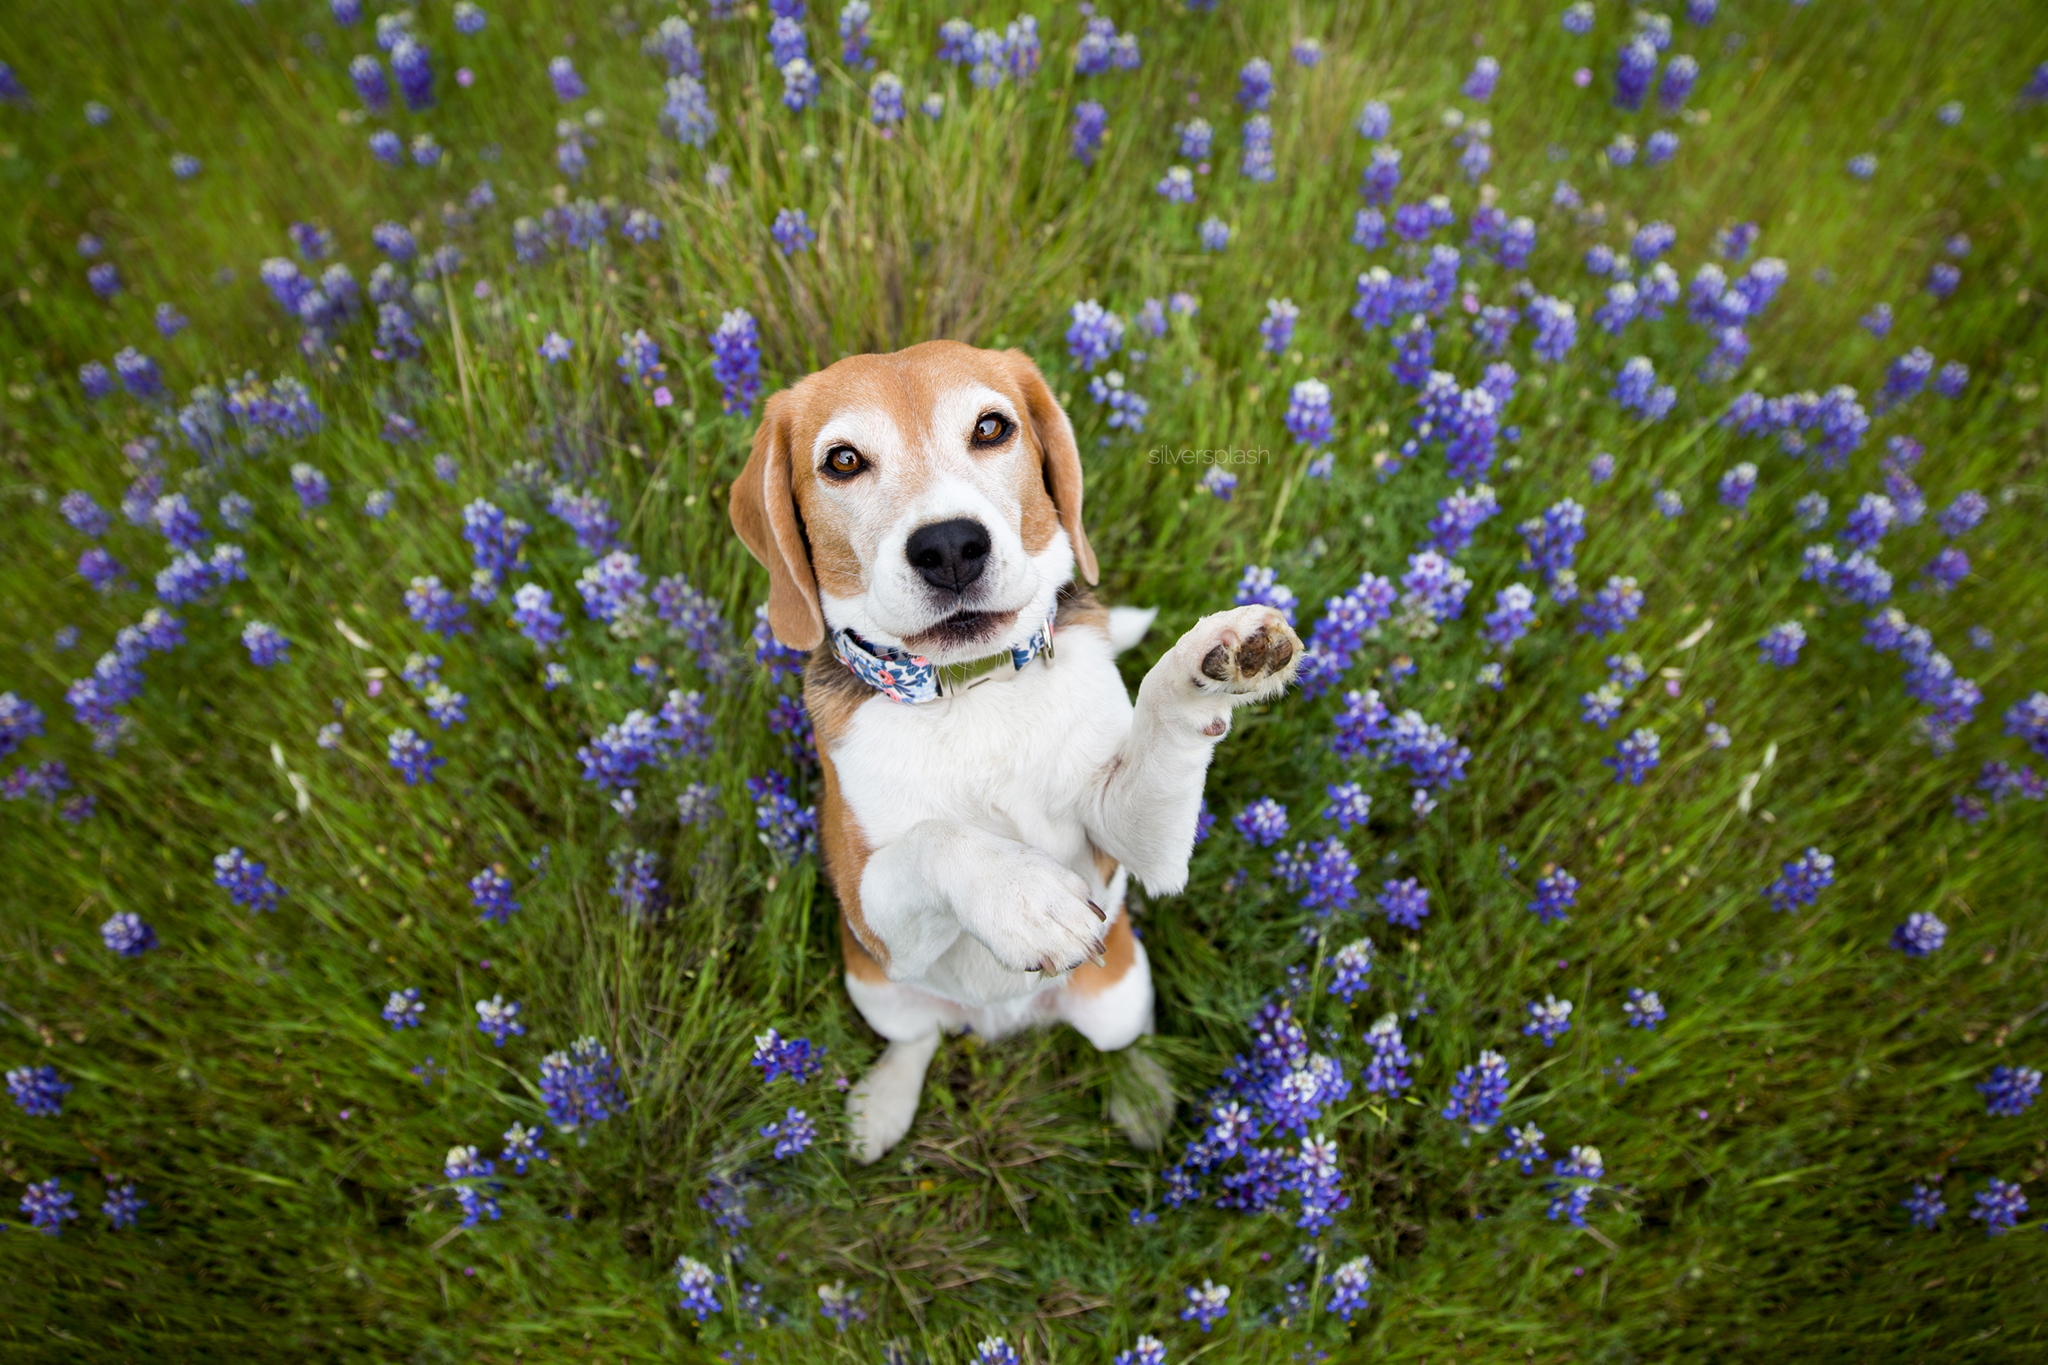 novoto-pet-photographer-beagle-wm.jpg